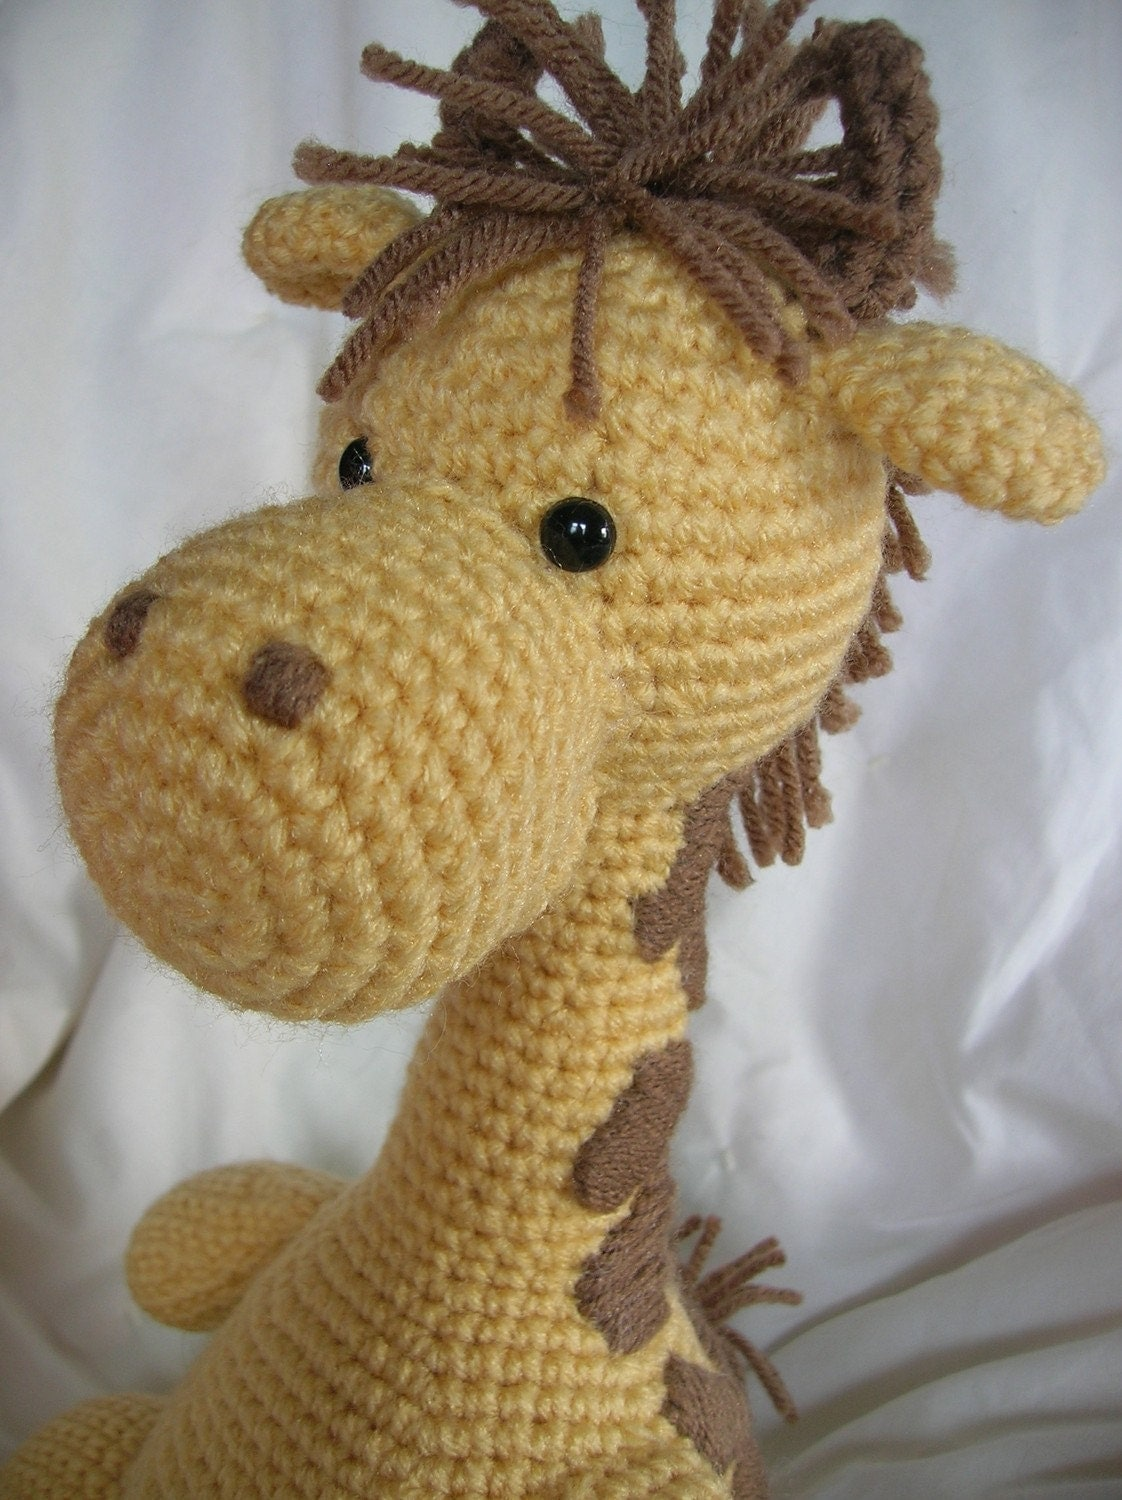 Crocheting Animals : AllFreeCrochet.com - Free Crochet Patterns, Crochet Projects, Tips